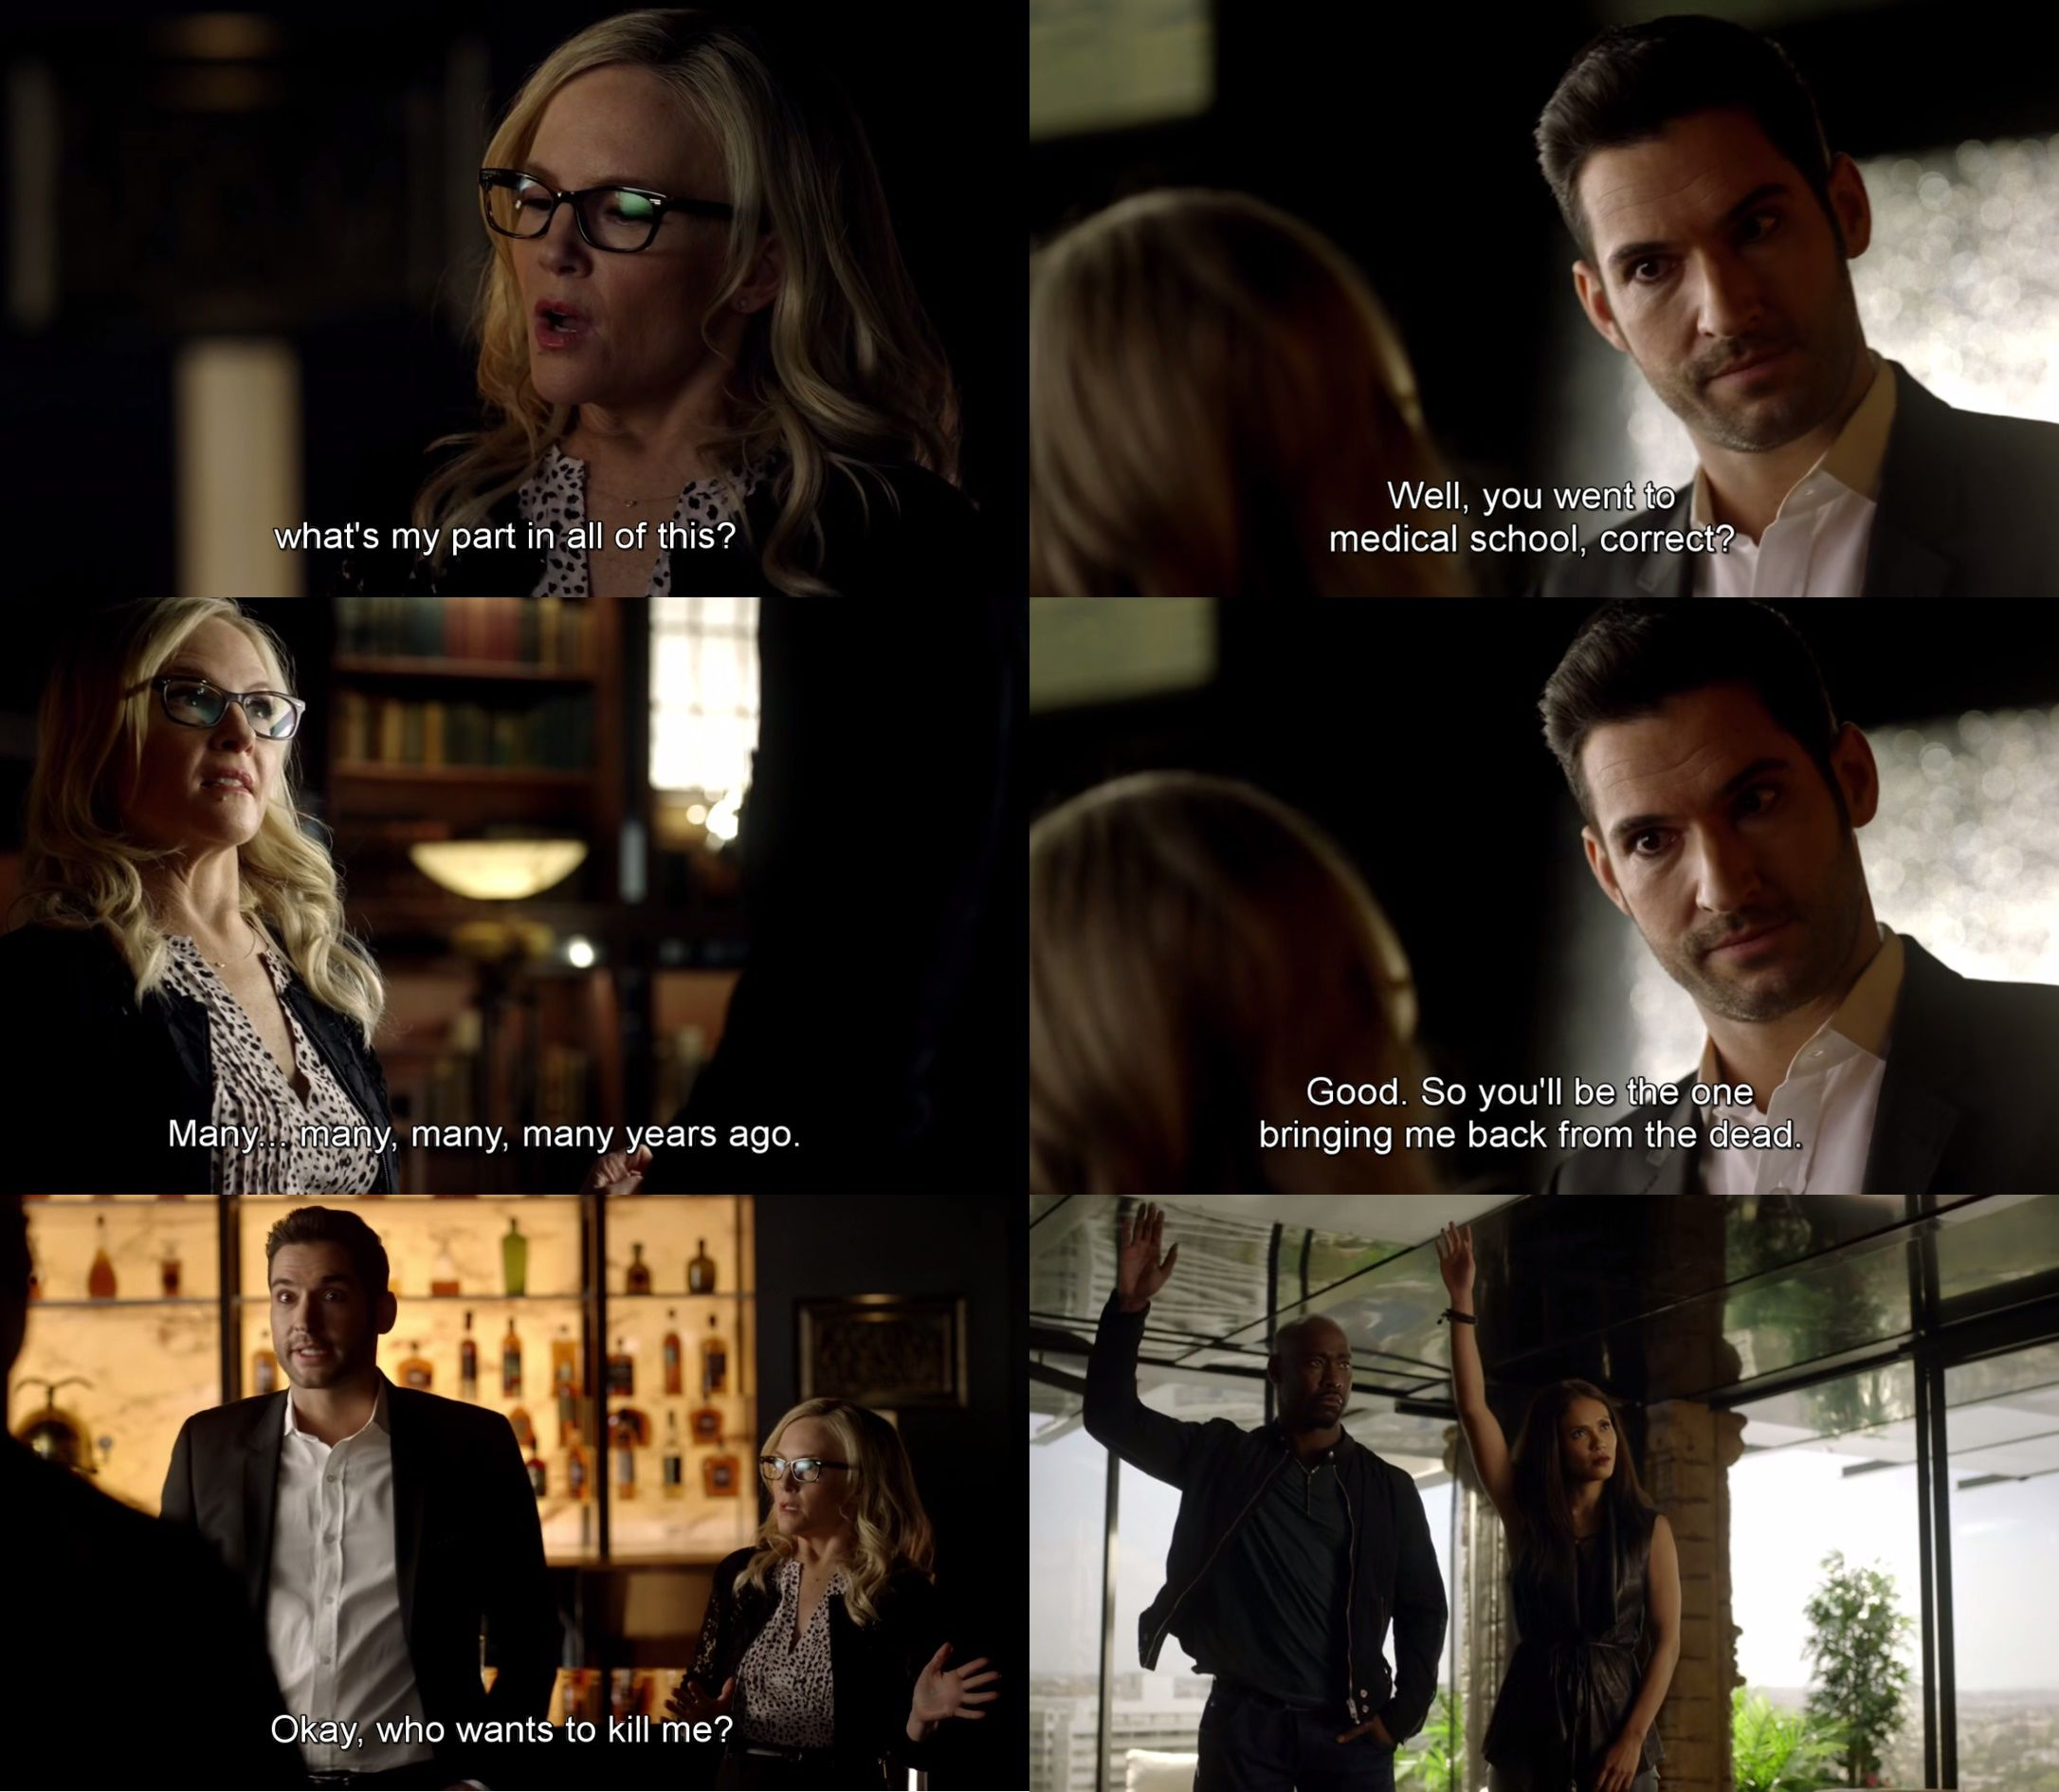 Lucifer S02E13 - Take Me Back To Hell